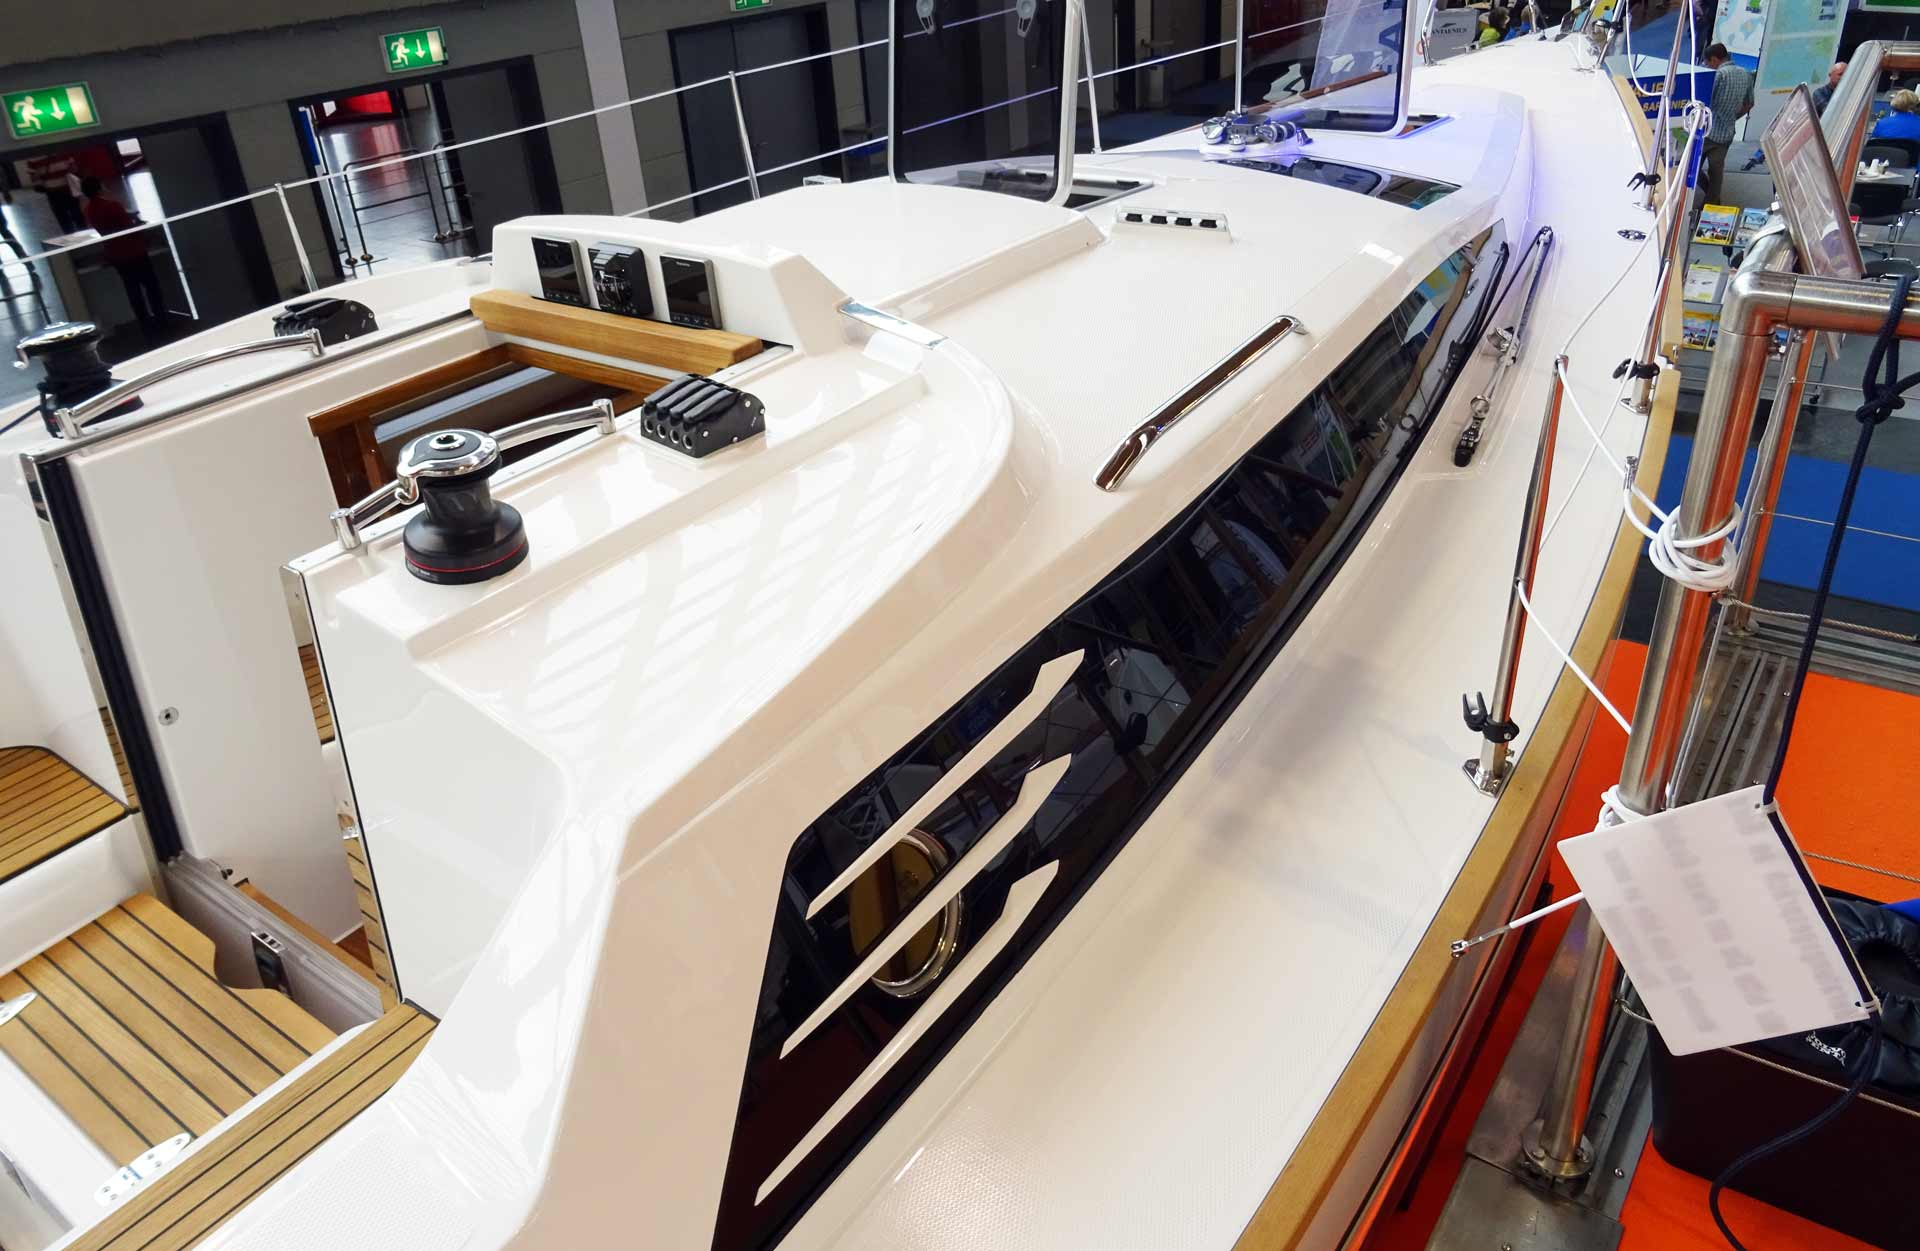 The three ornamental fins are the signature of Schöchl Yachts